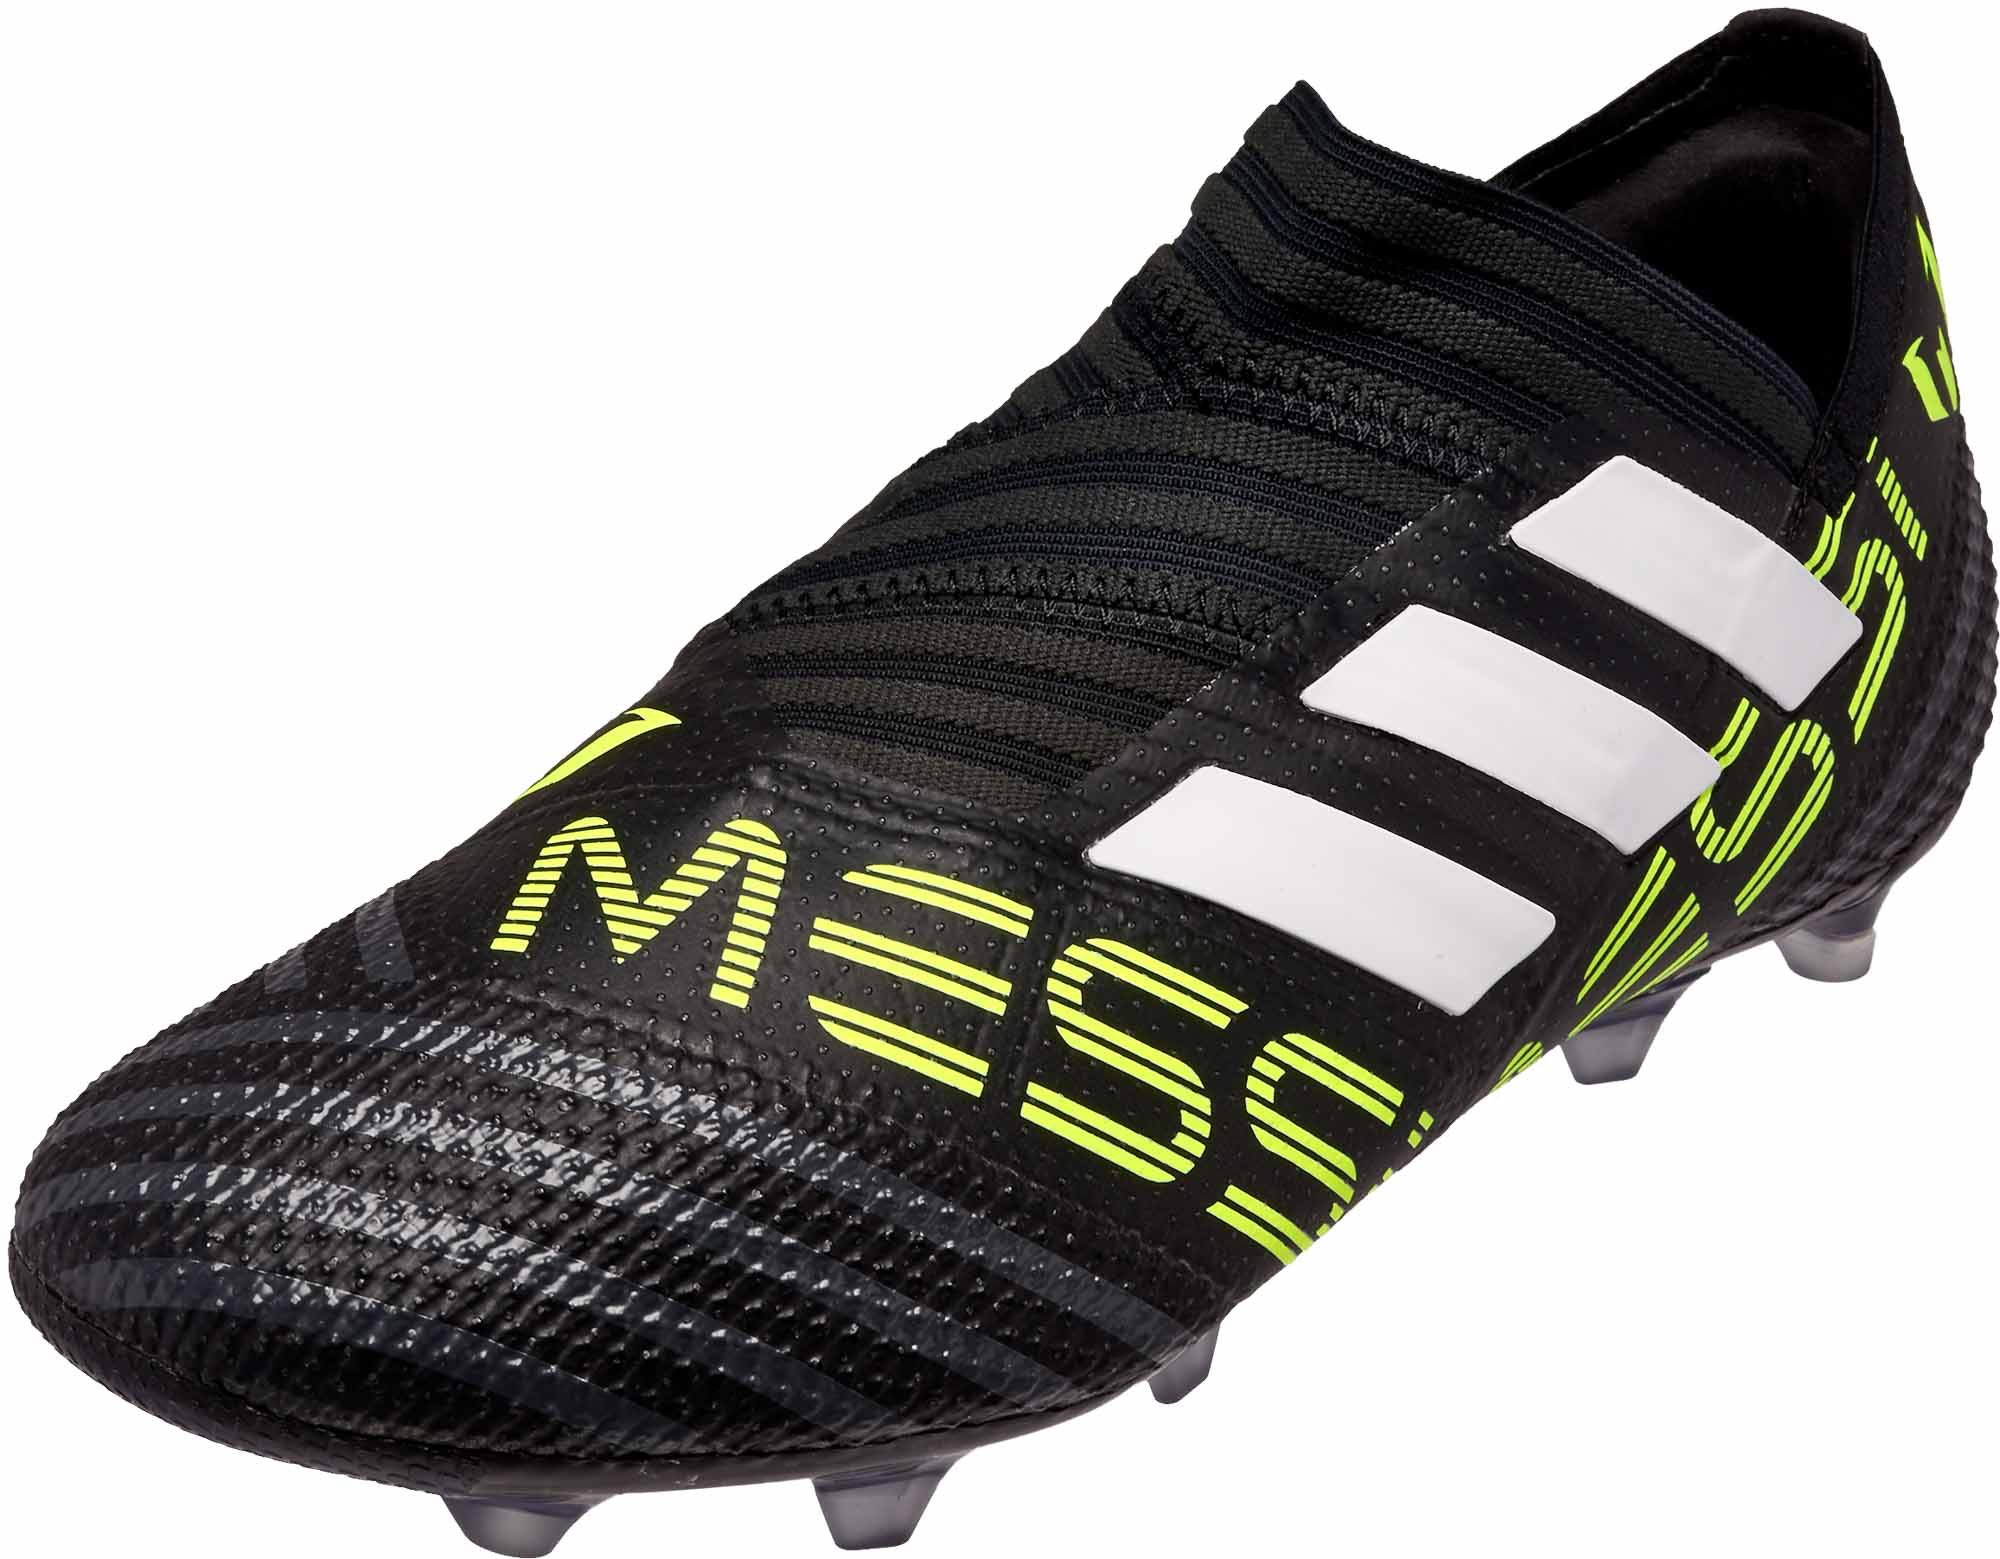 Our online soccer store and retail locations started from humble beginnings in , and since Soccer Stop has enjoyed fantastic growth by providing authentic soccer equipment and soccer gear for individual soccer players, teams, schools (High School & College), and soccer clubs of every size. Offers competitive pricing and delivers soccer enthusiasts and athletes with an extensive and.